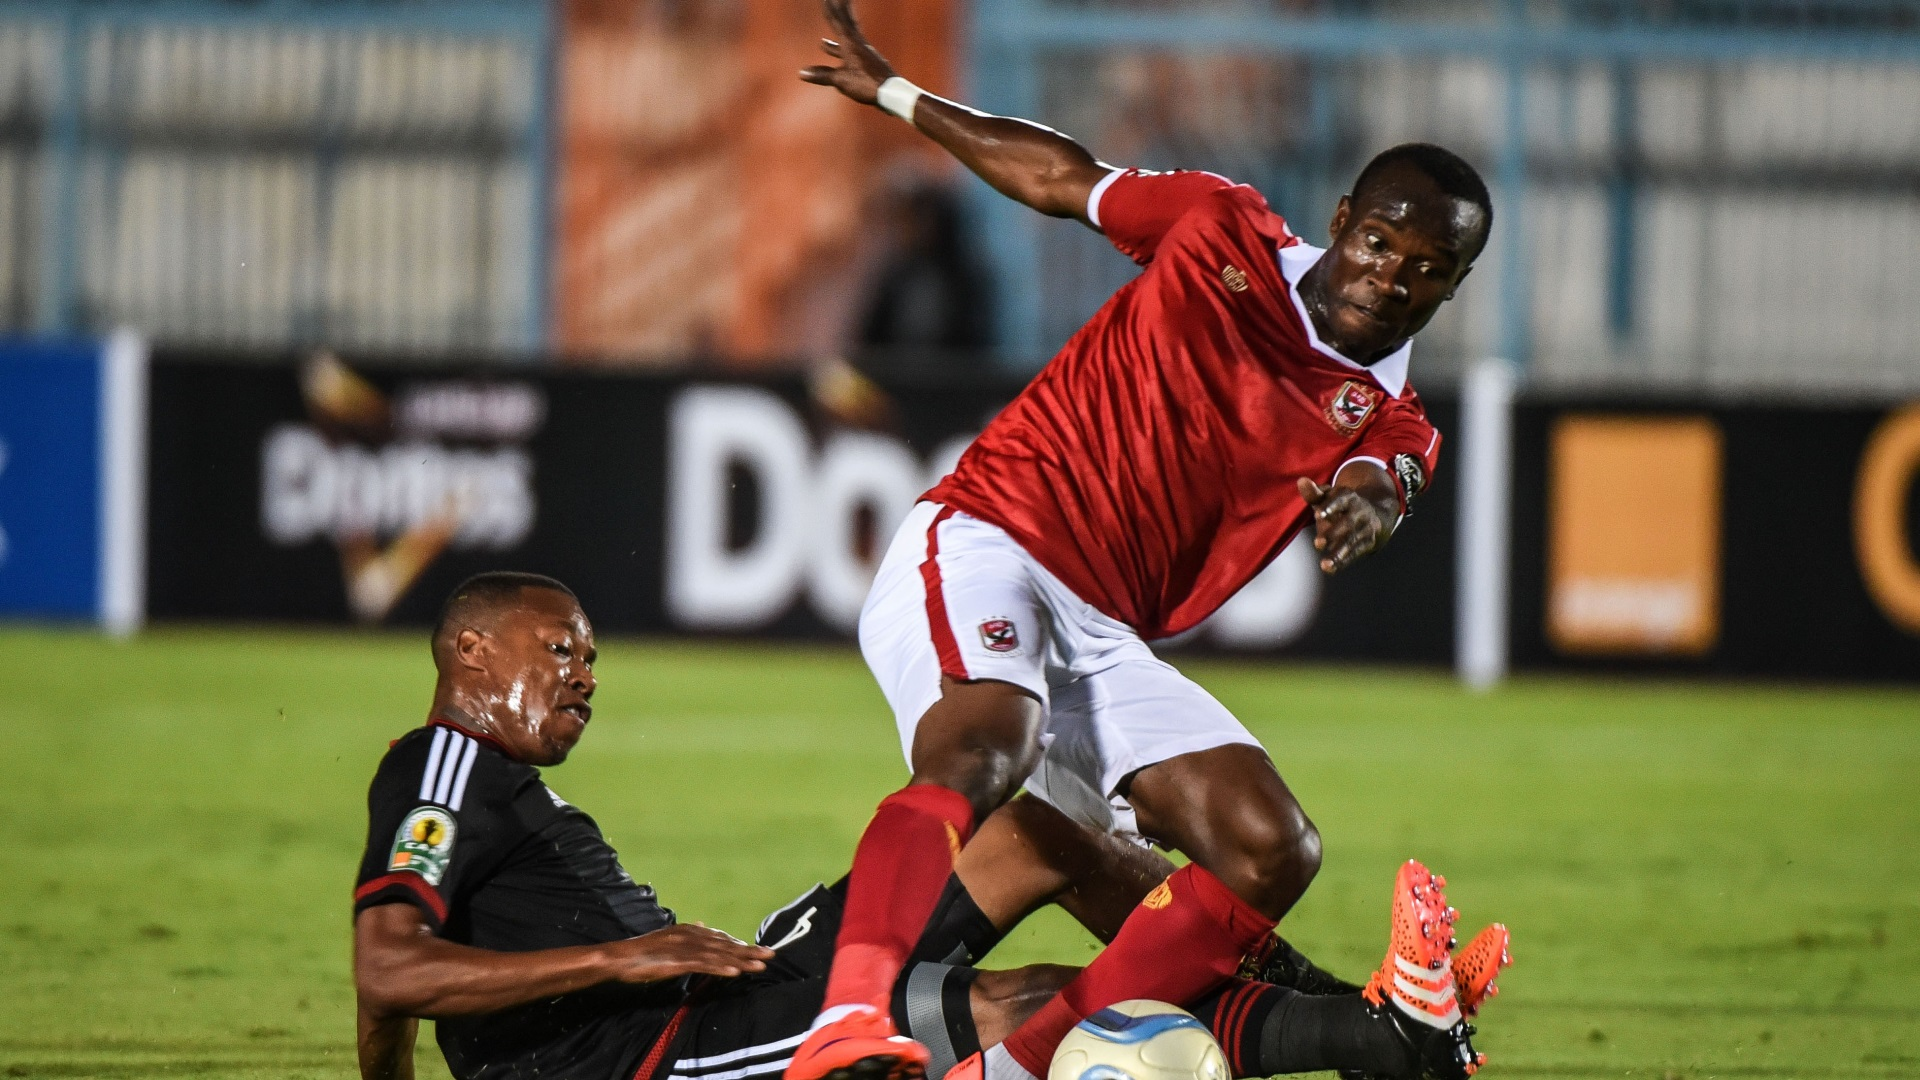 Ghana striker Antwi makes goalscoring history in Egyptian football